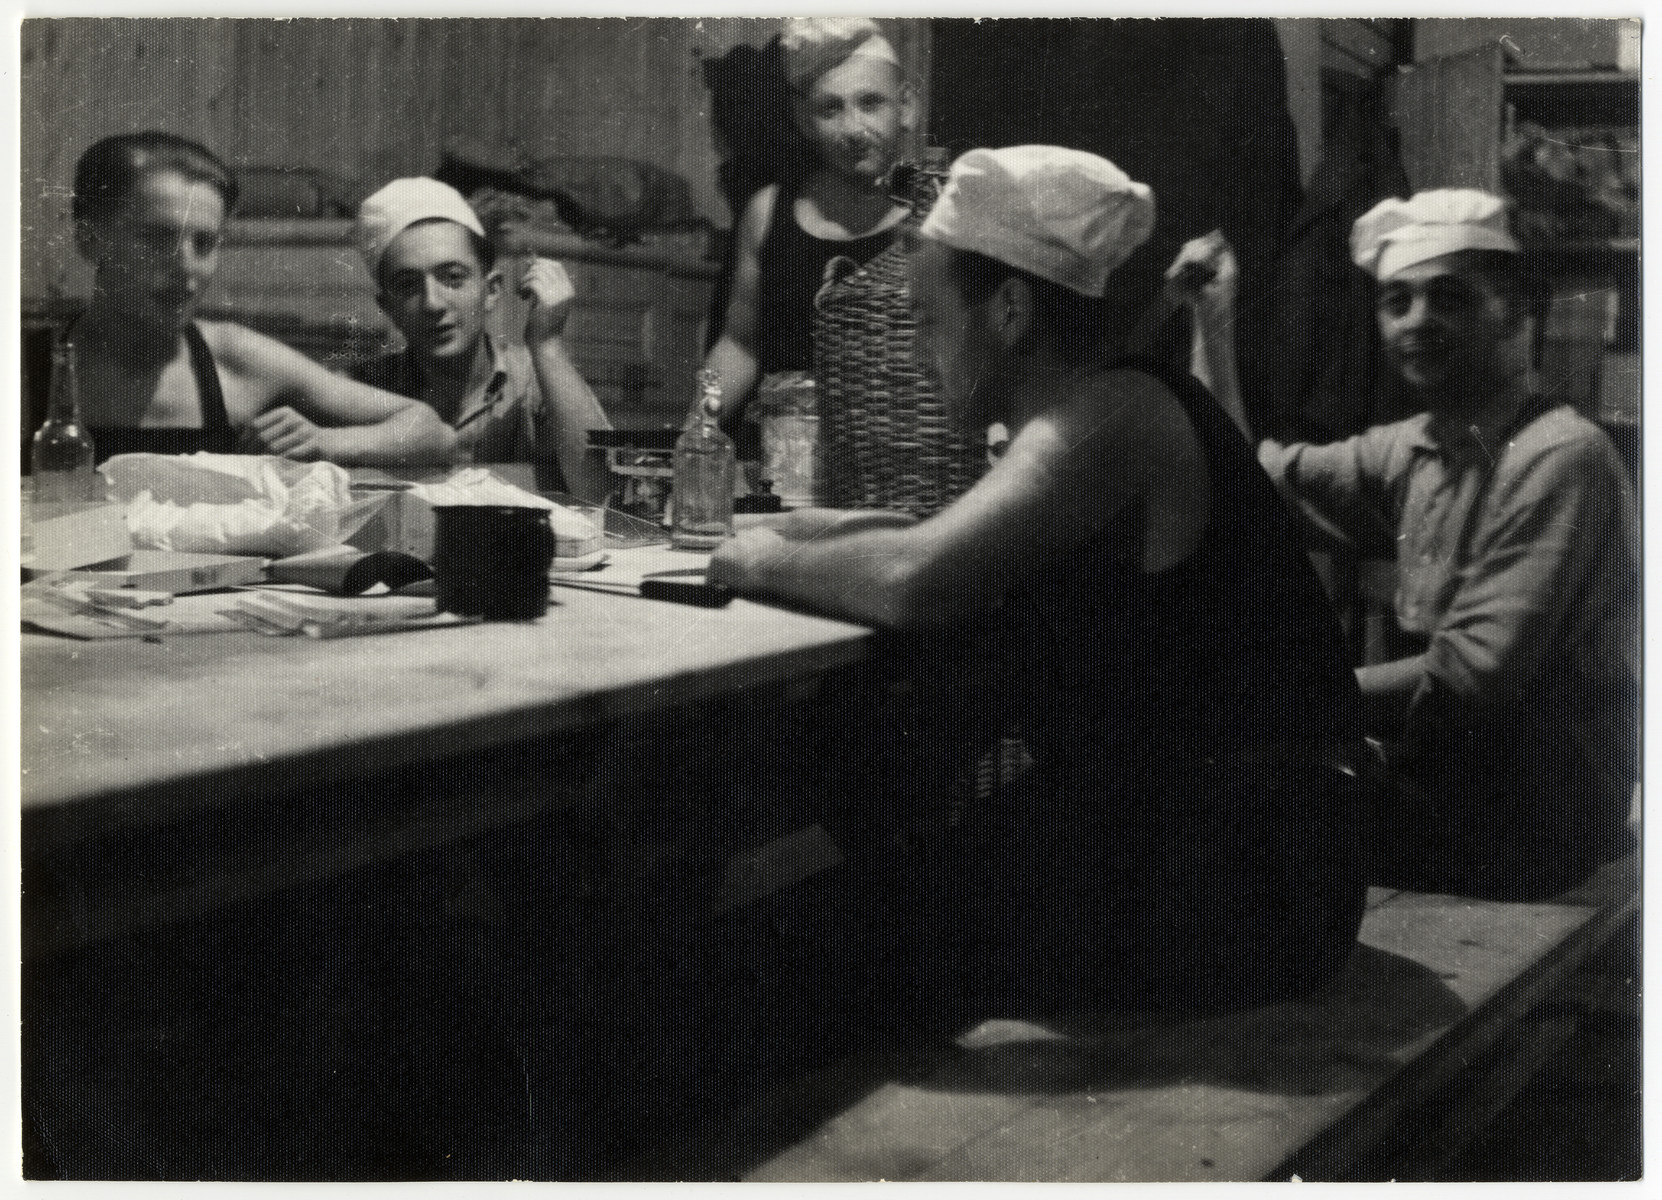 Workers sit  by a table in the kitchen of the Lipa farm labor camp.